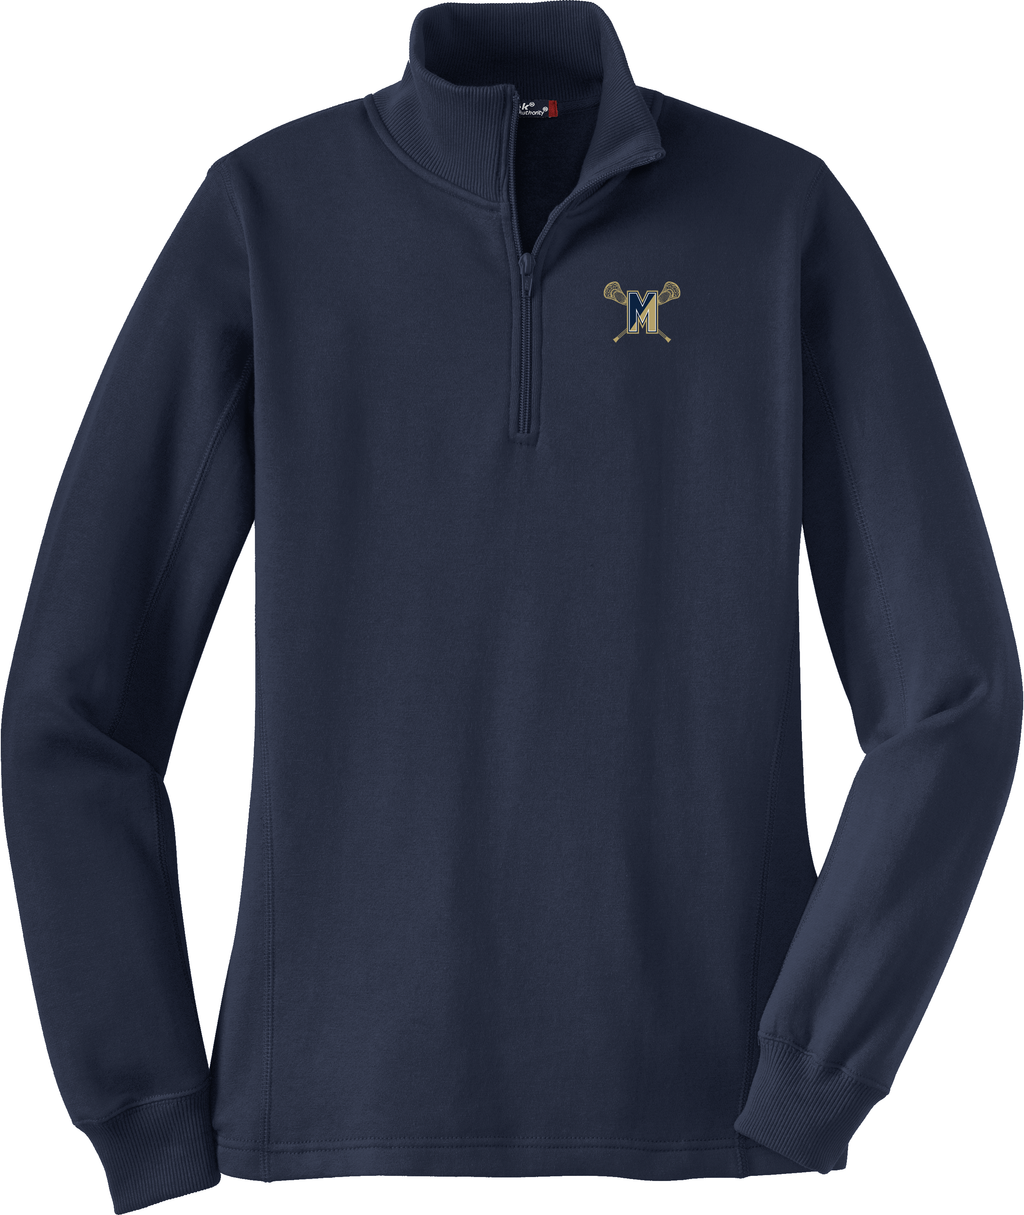 Malden Lacrosse Women's 1/4 Zip Fleece